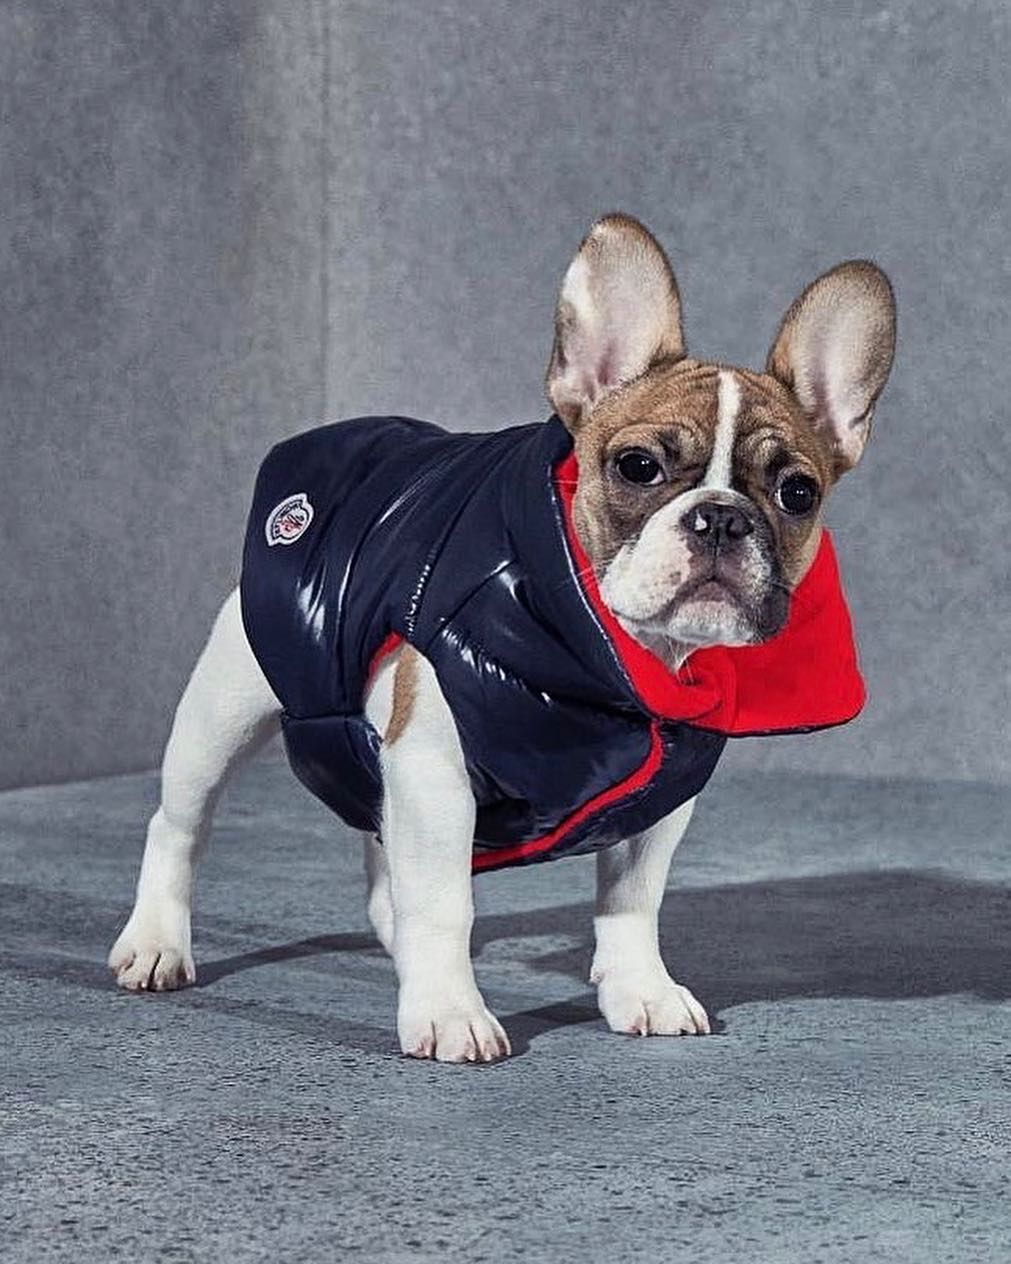 Moncler On Instagram New York Dog Lovers Prepare Your Pet For